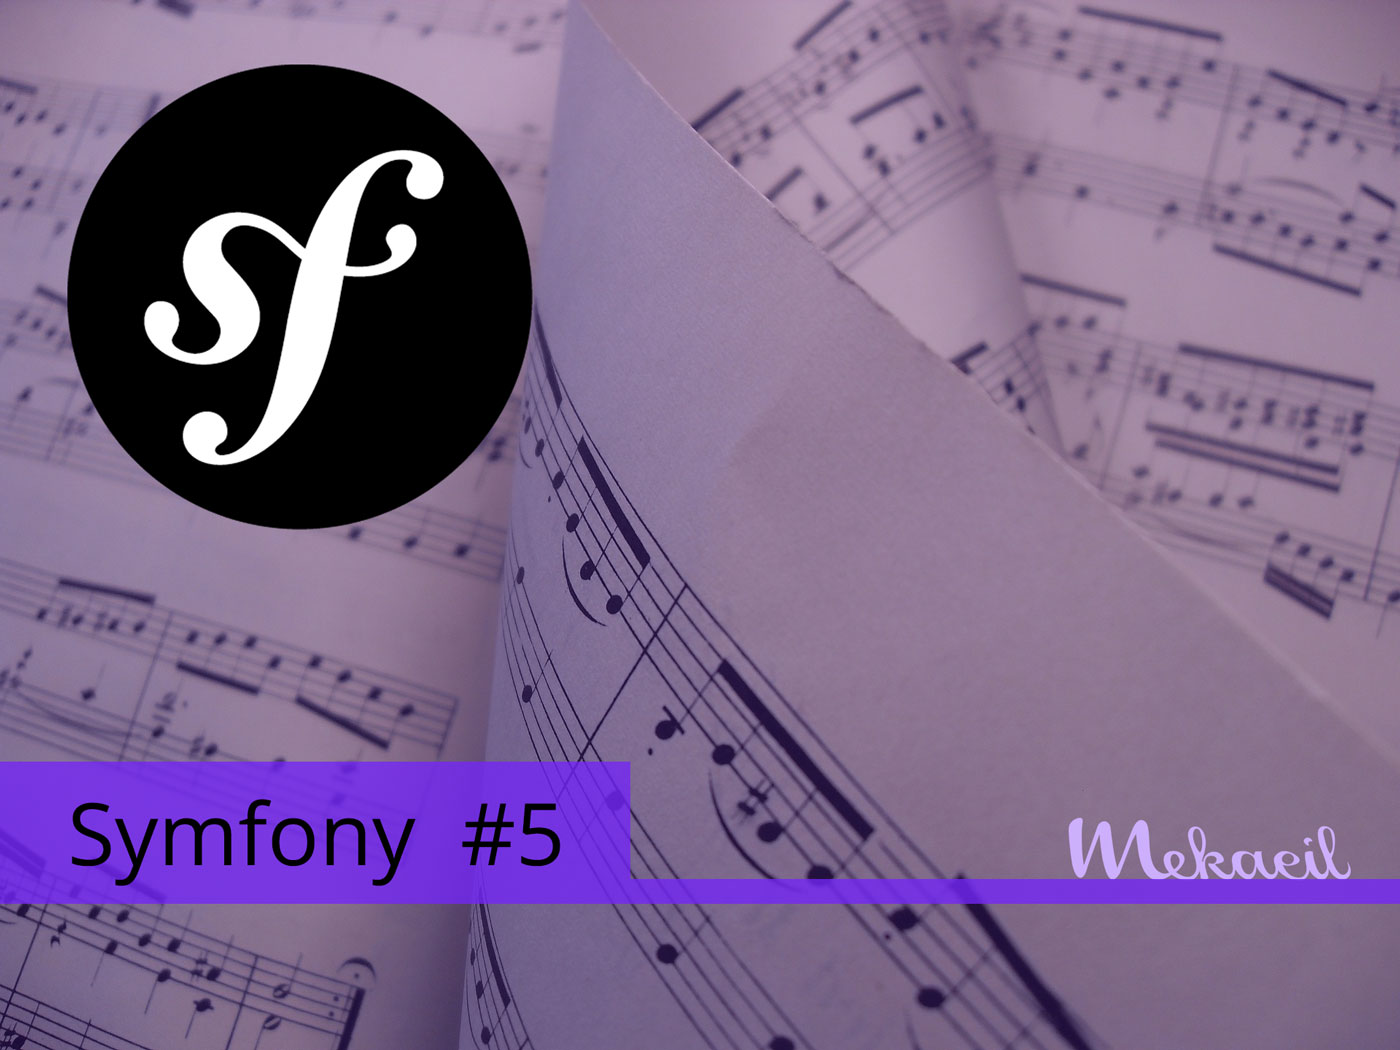 Symfony controller and routing